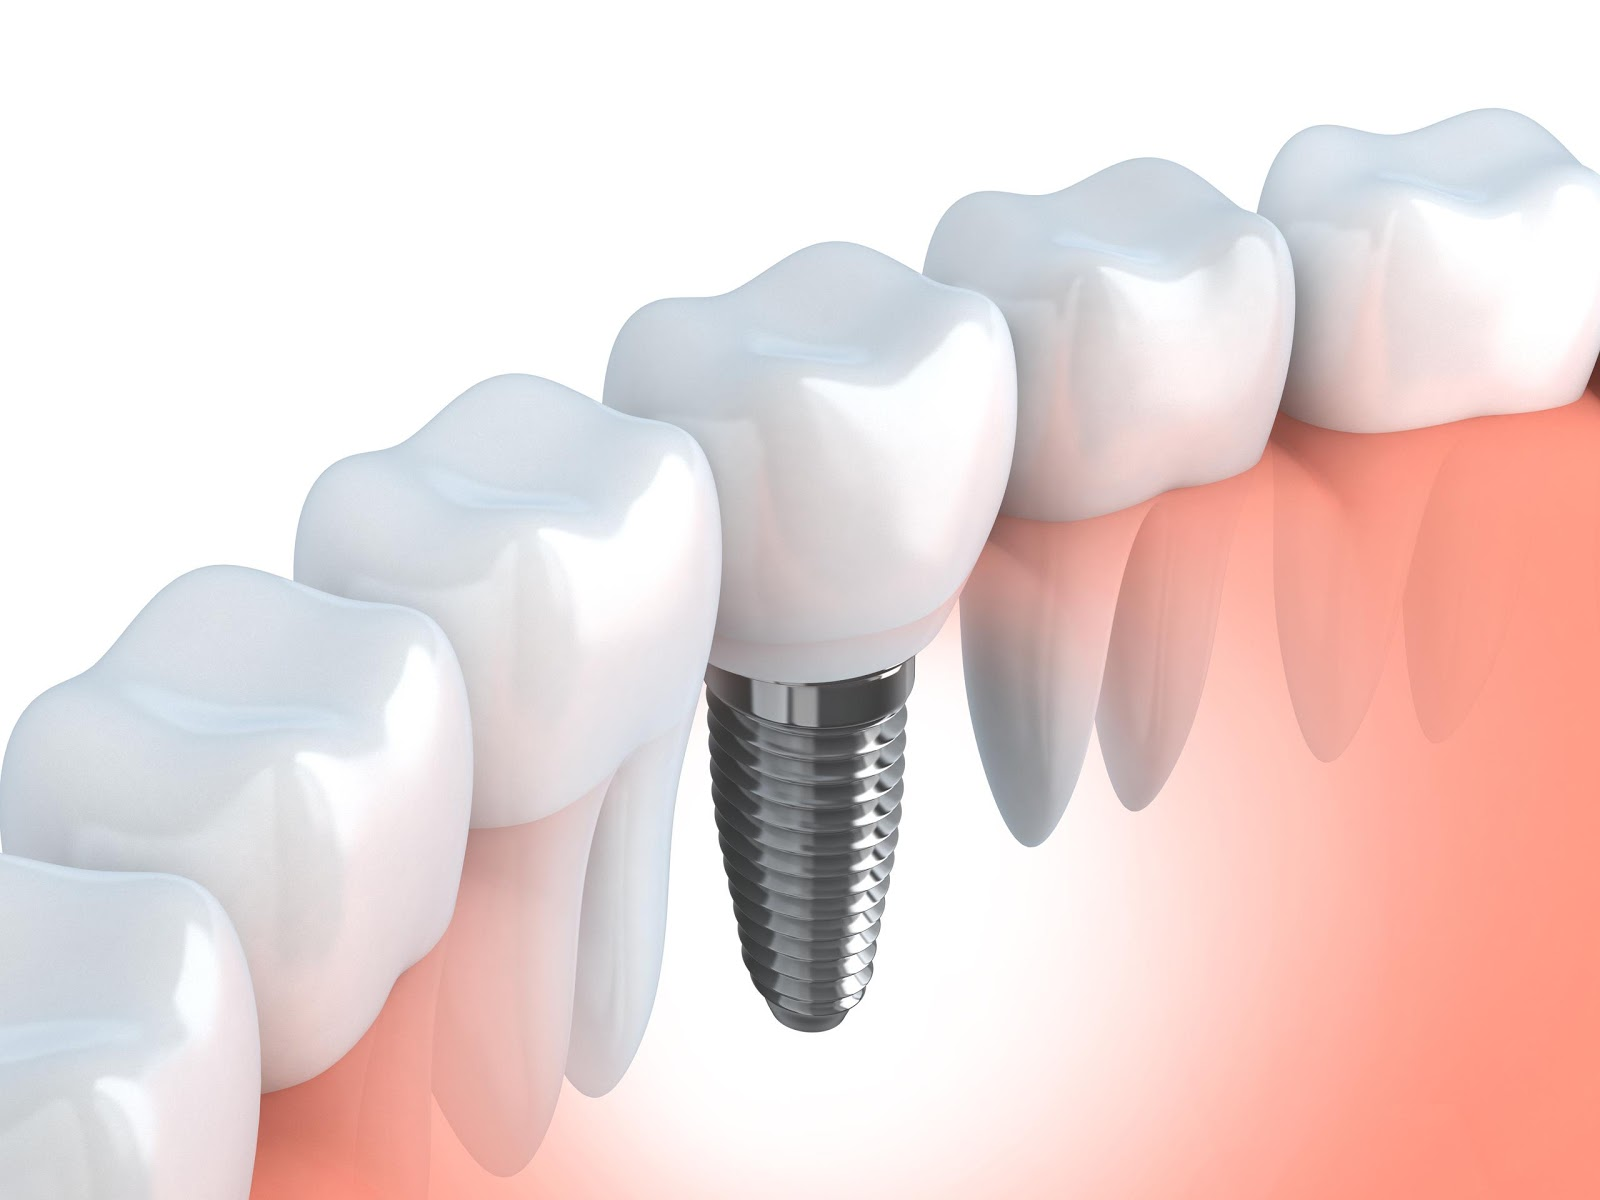 Dental Implants,, How To Get Your Smile Back With Dental Implants, Smile Back With Dental Implants